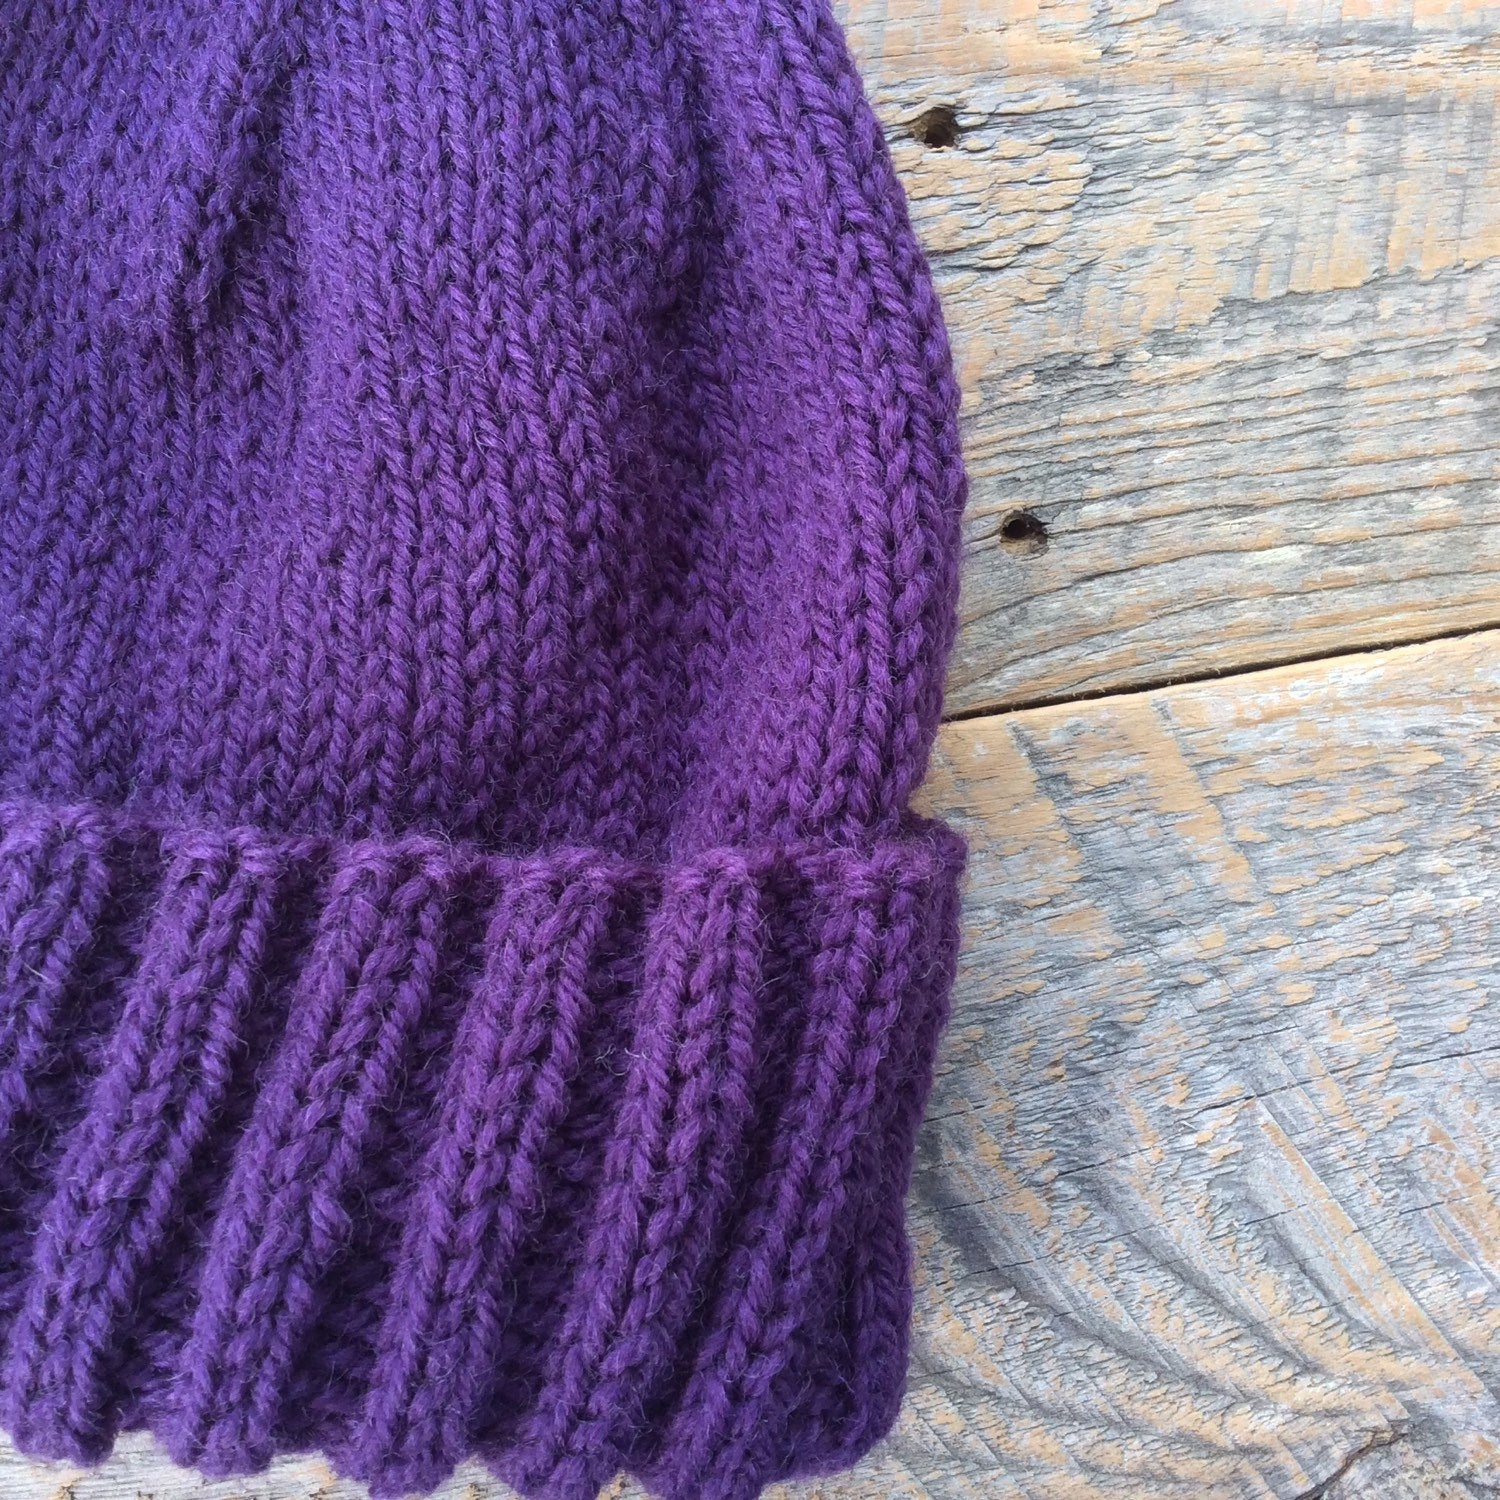 Womens winter hat - hand knit from purple wool - Lambs Ears Knits